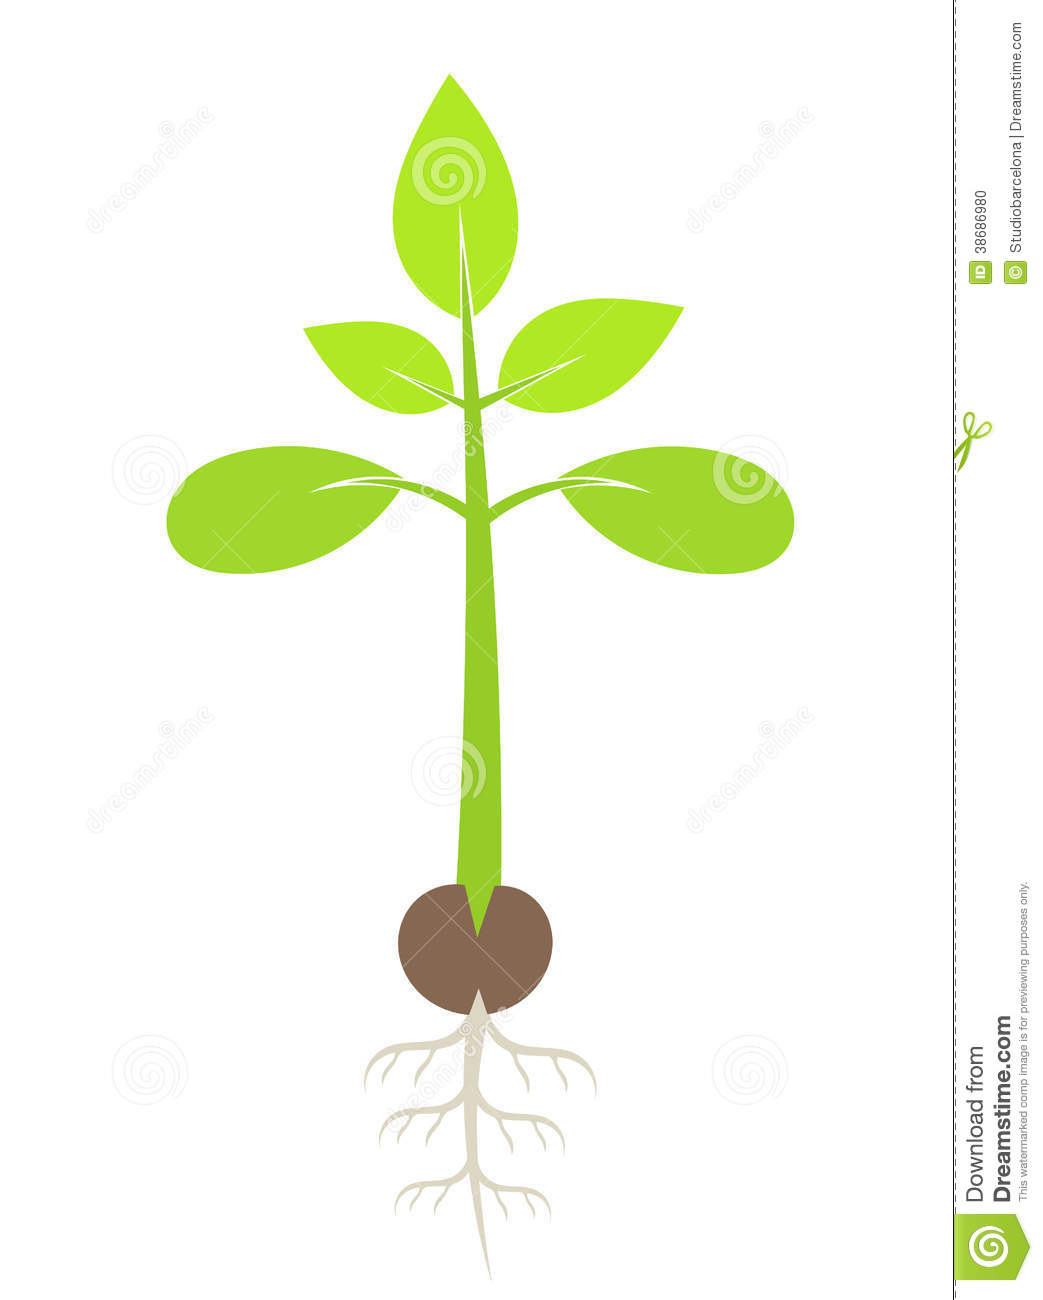 Seedling Flower Illustration